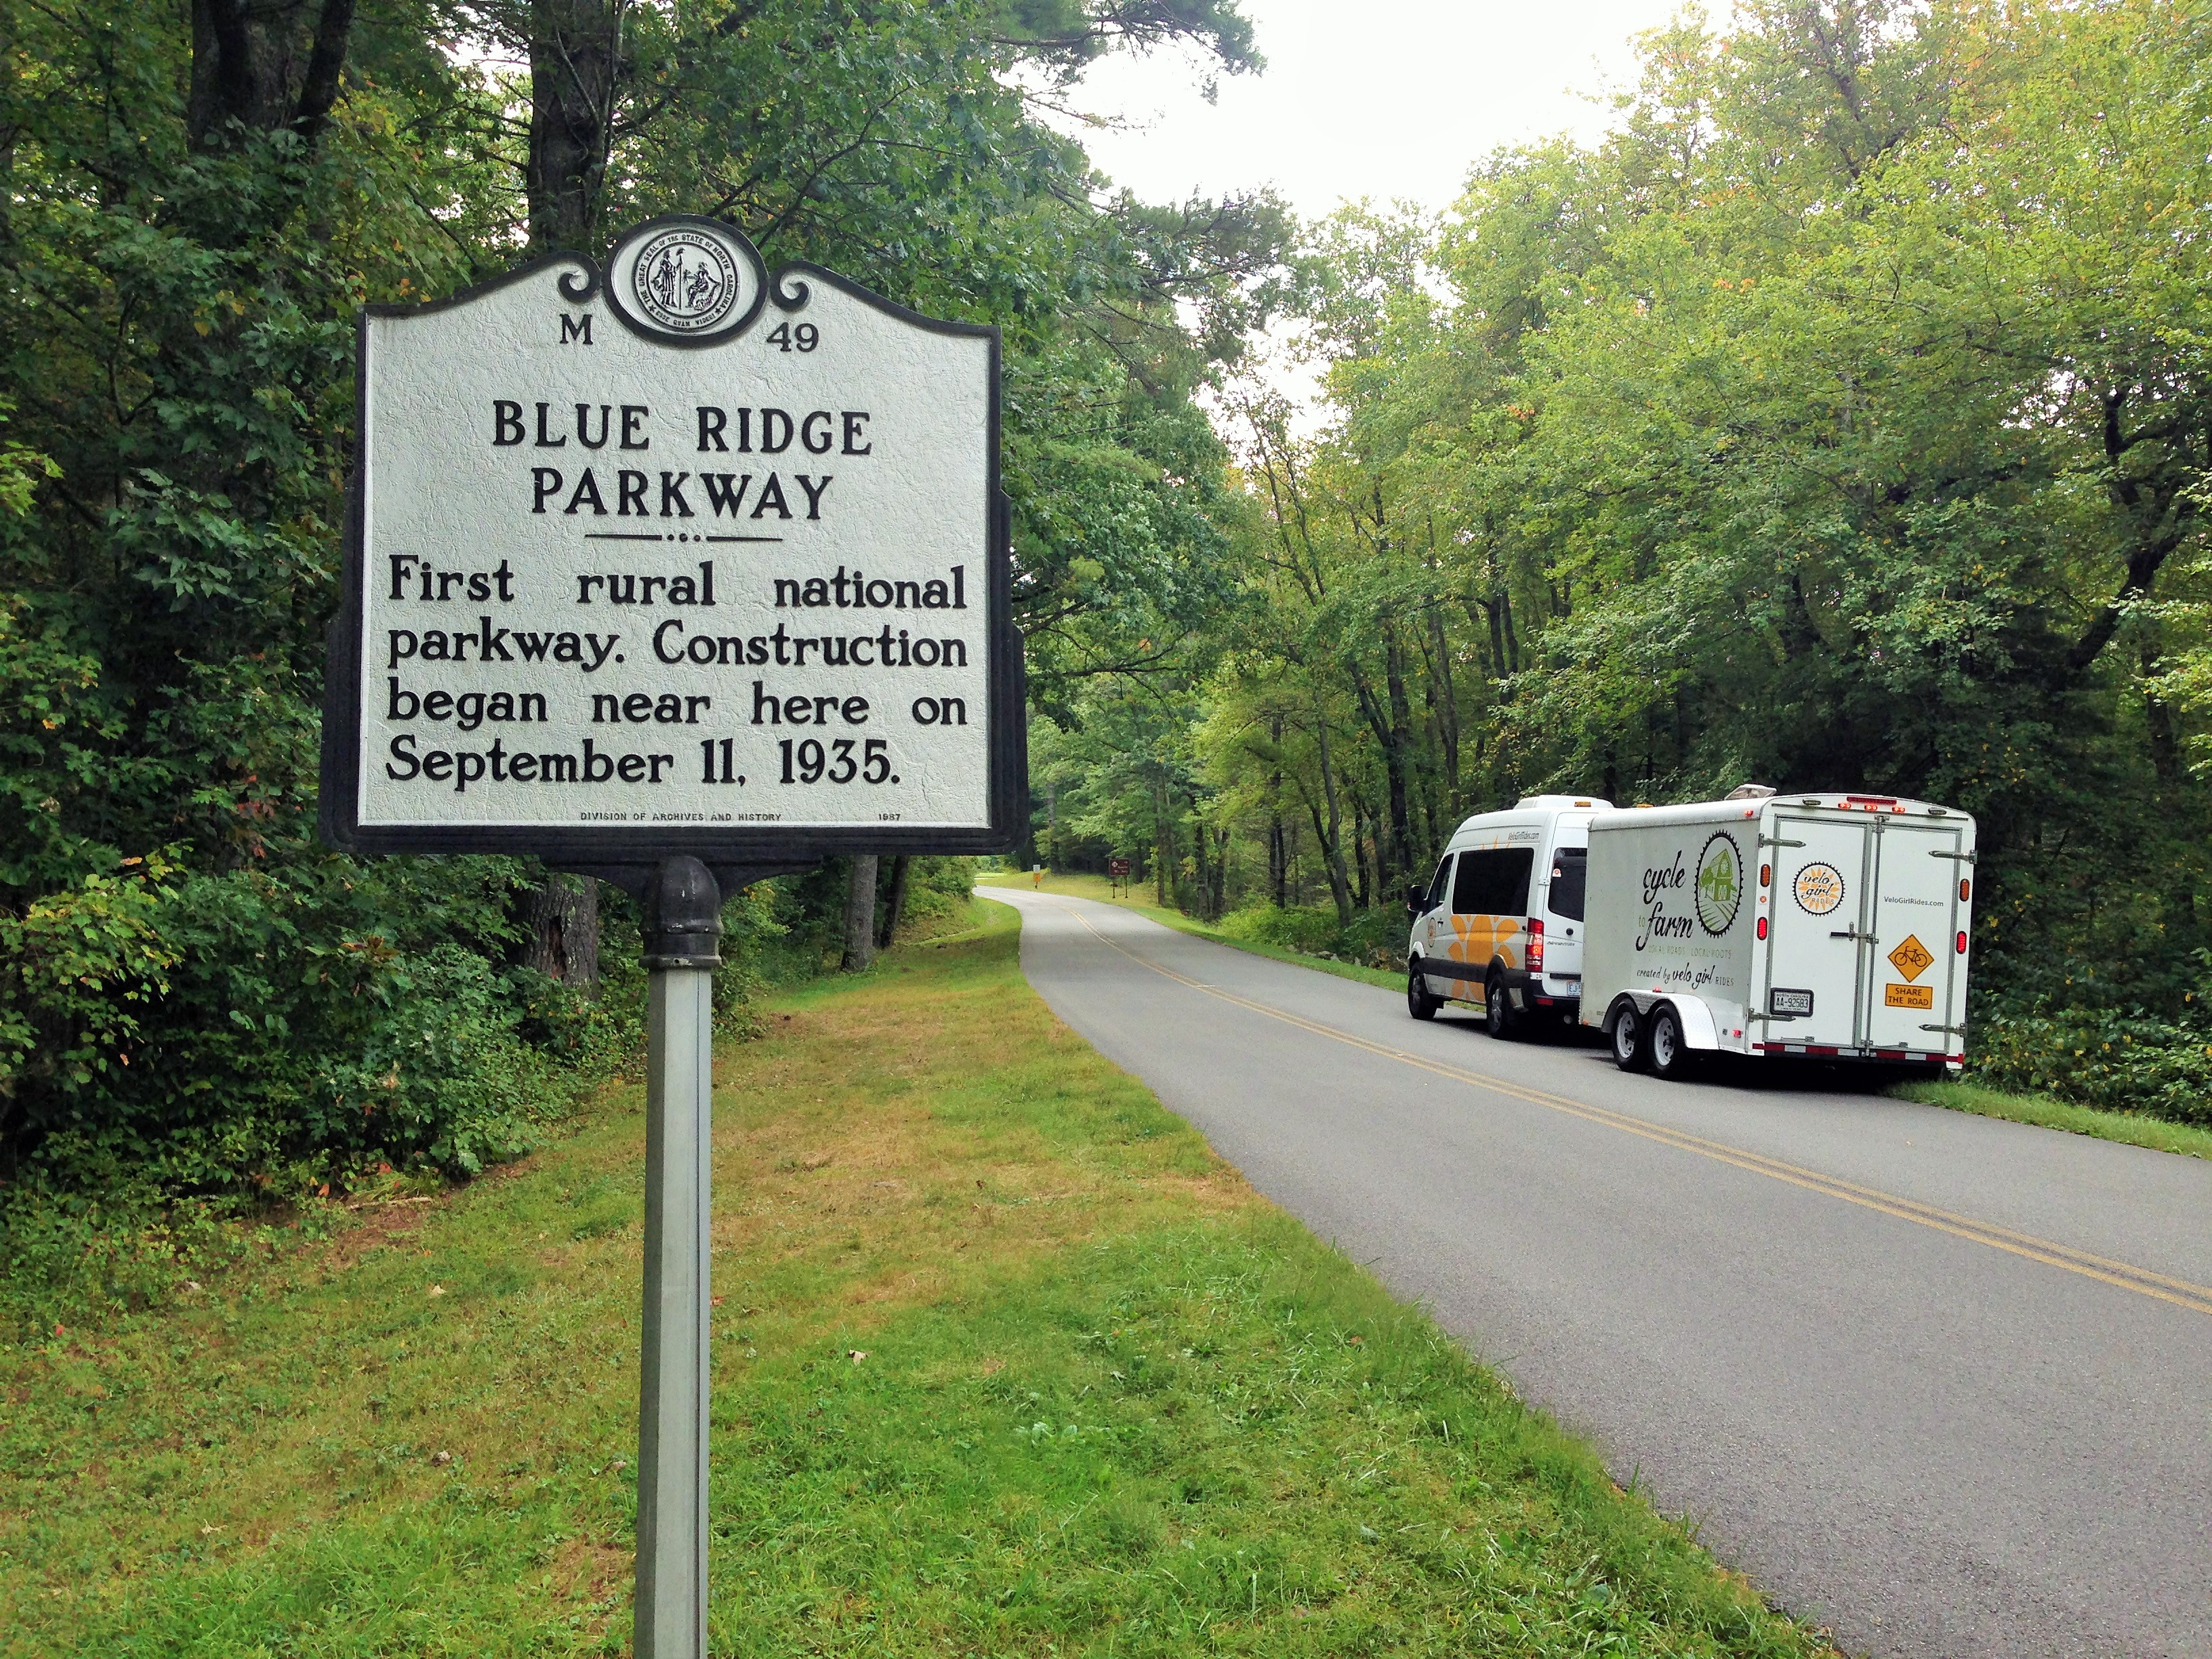 Blue Ridge Parkway Historic Marker